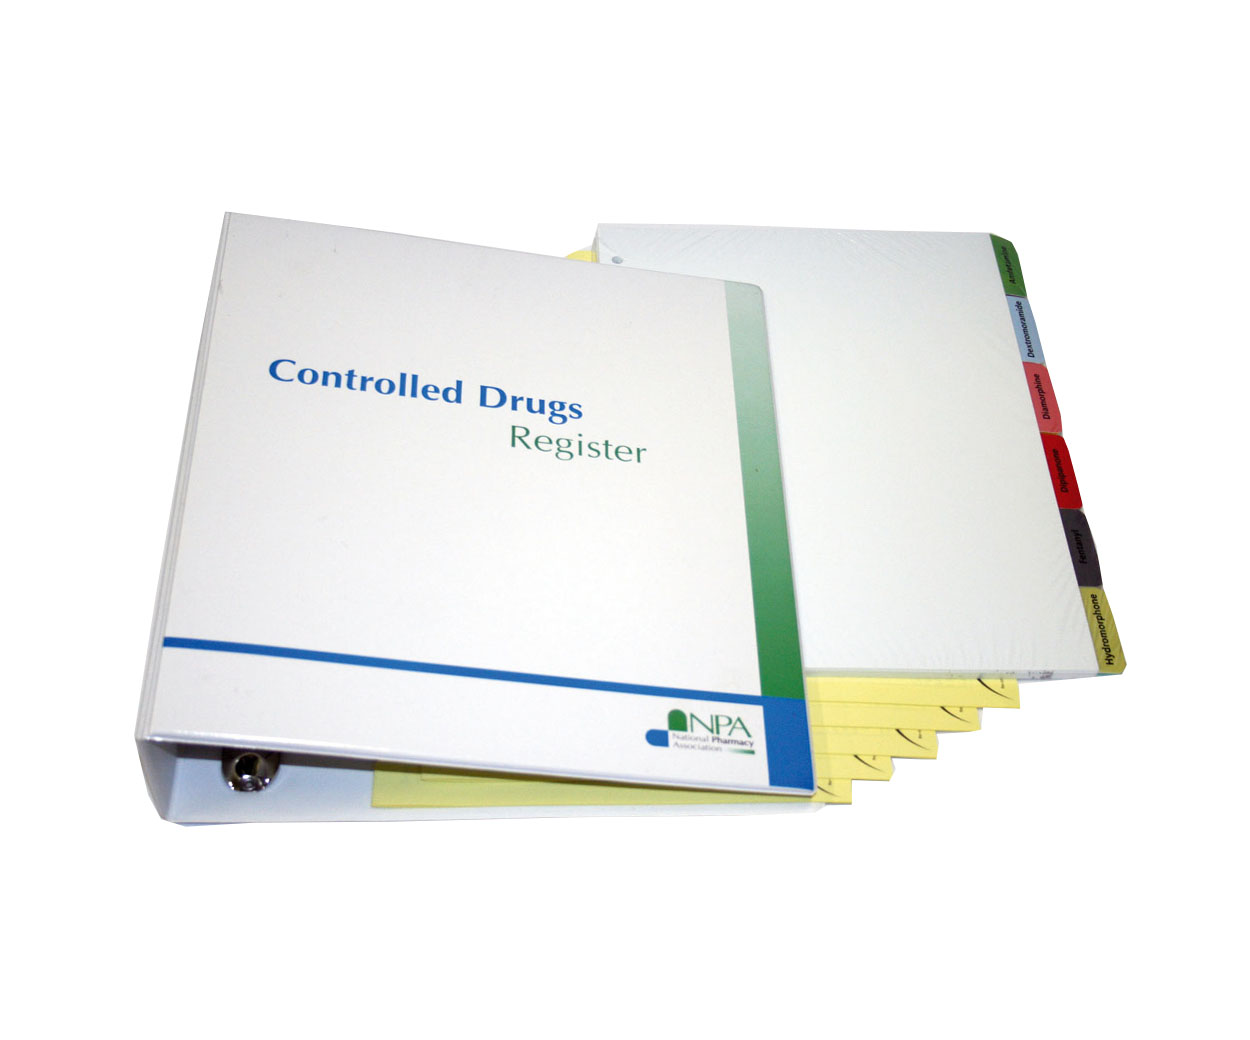 Complete Controlled Drugs Register